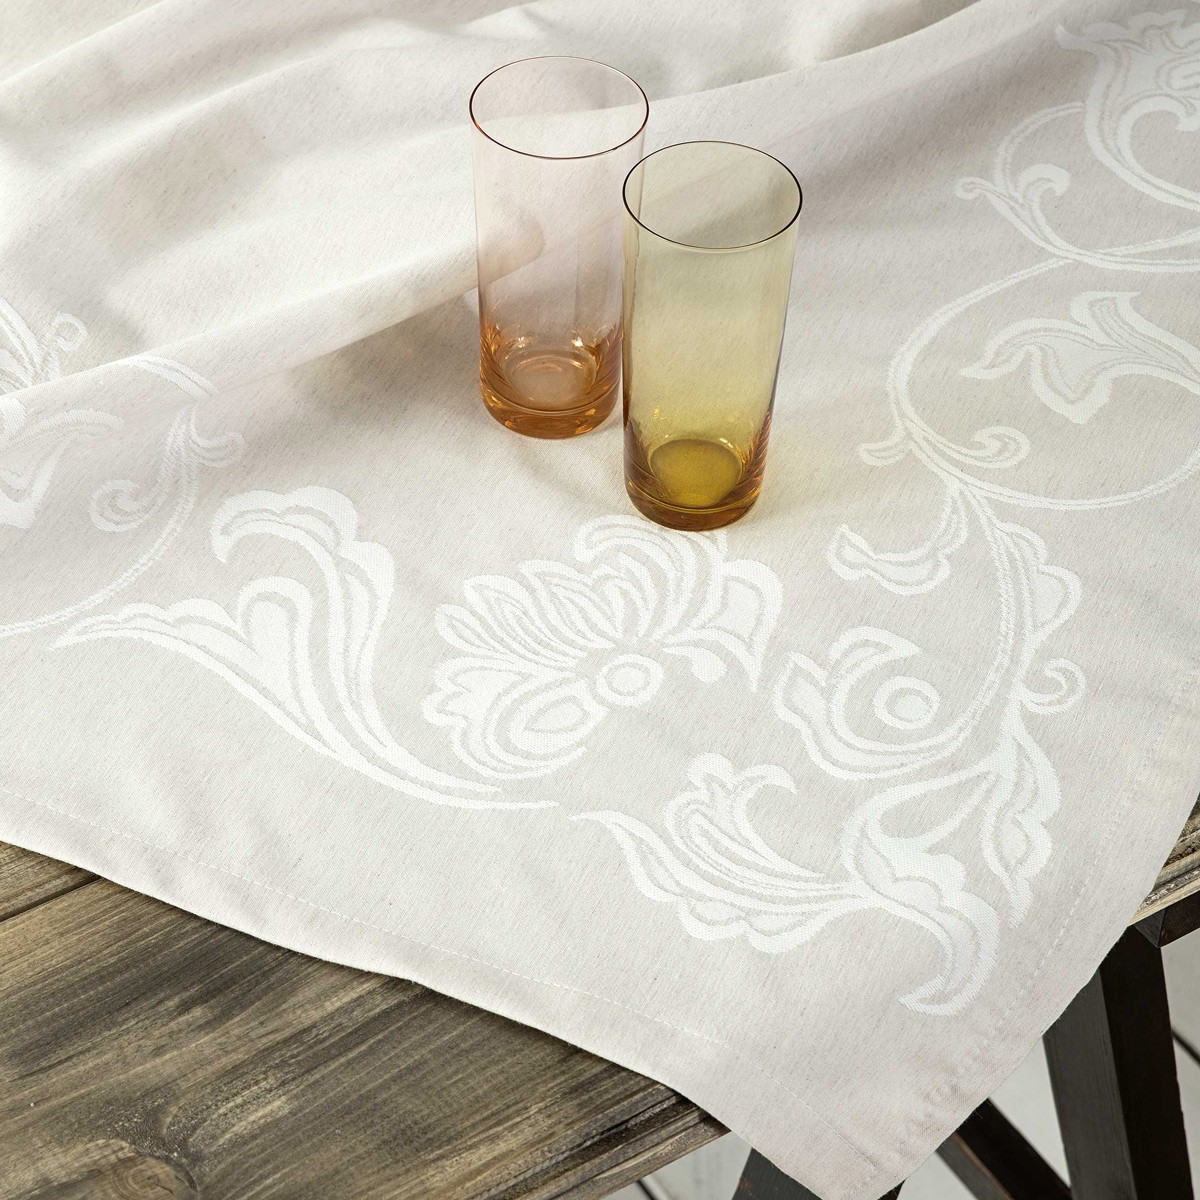 Τραπεζομάντηλο (165x310) Nima Table Linen Elodie Beige